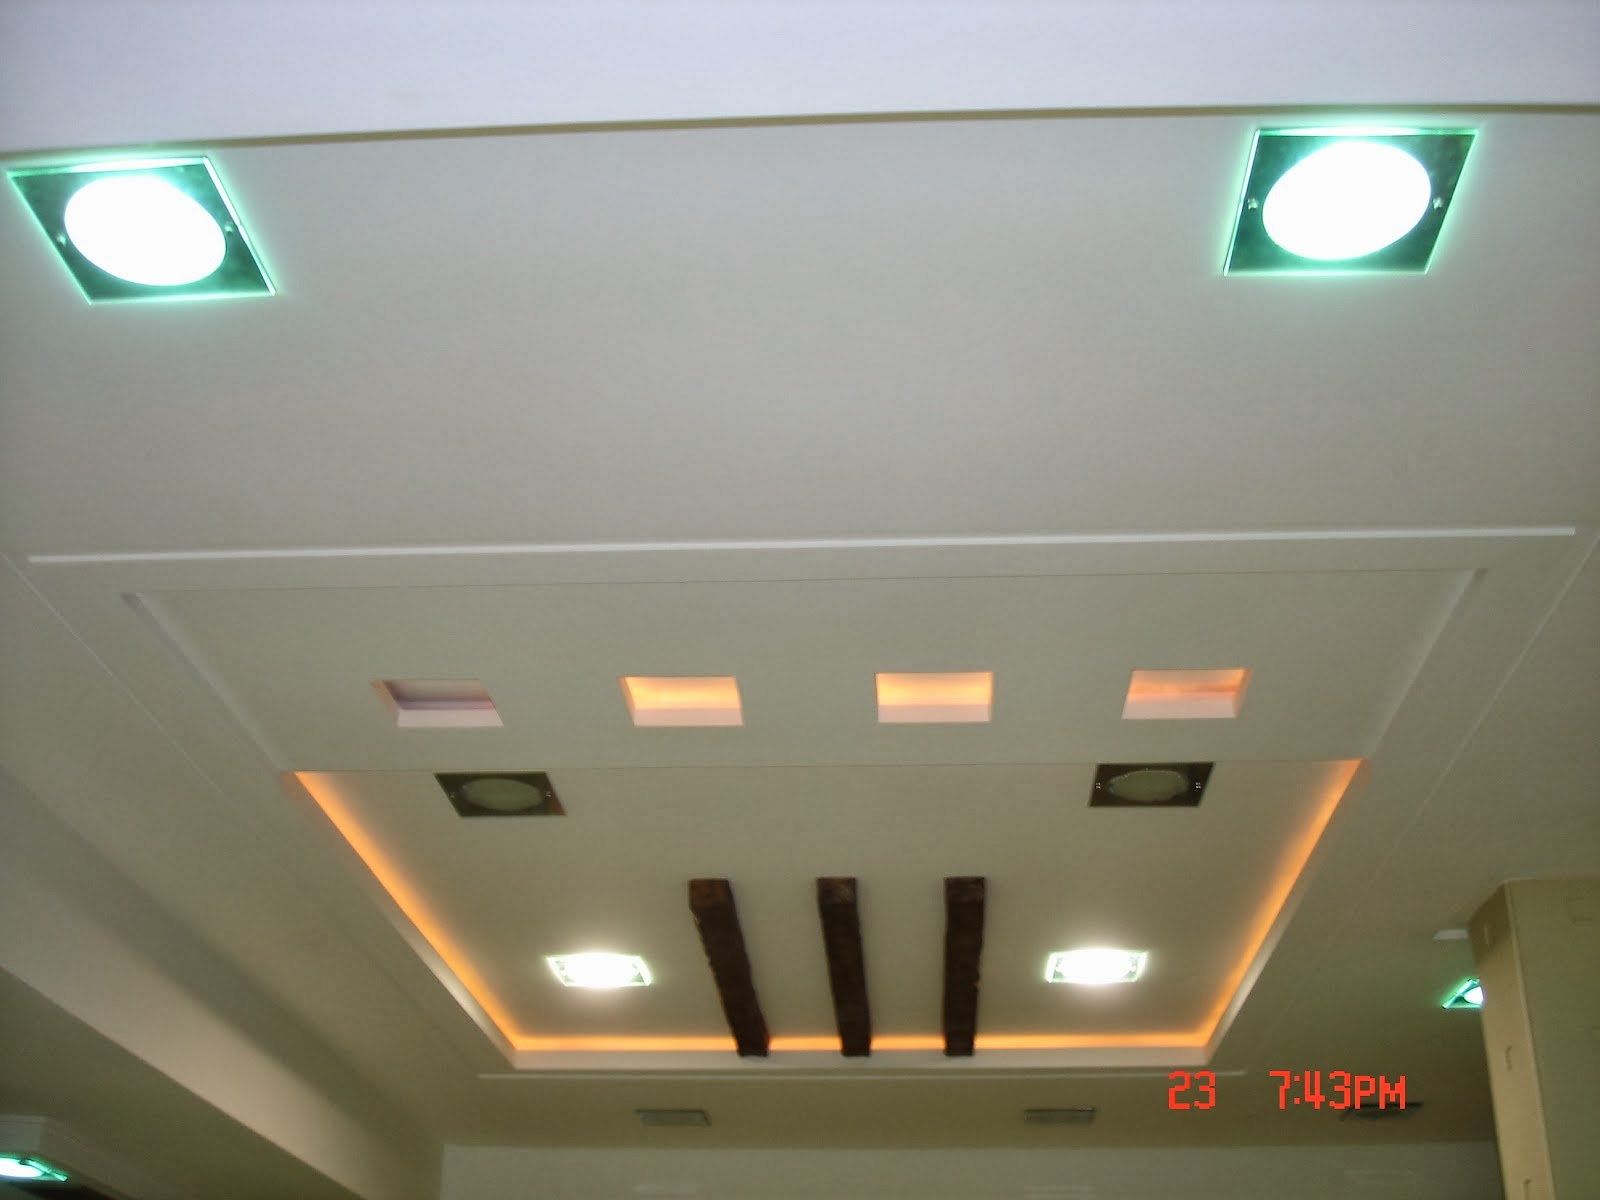 Platre plafond salon moderne id es de for Decor de platre 2015